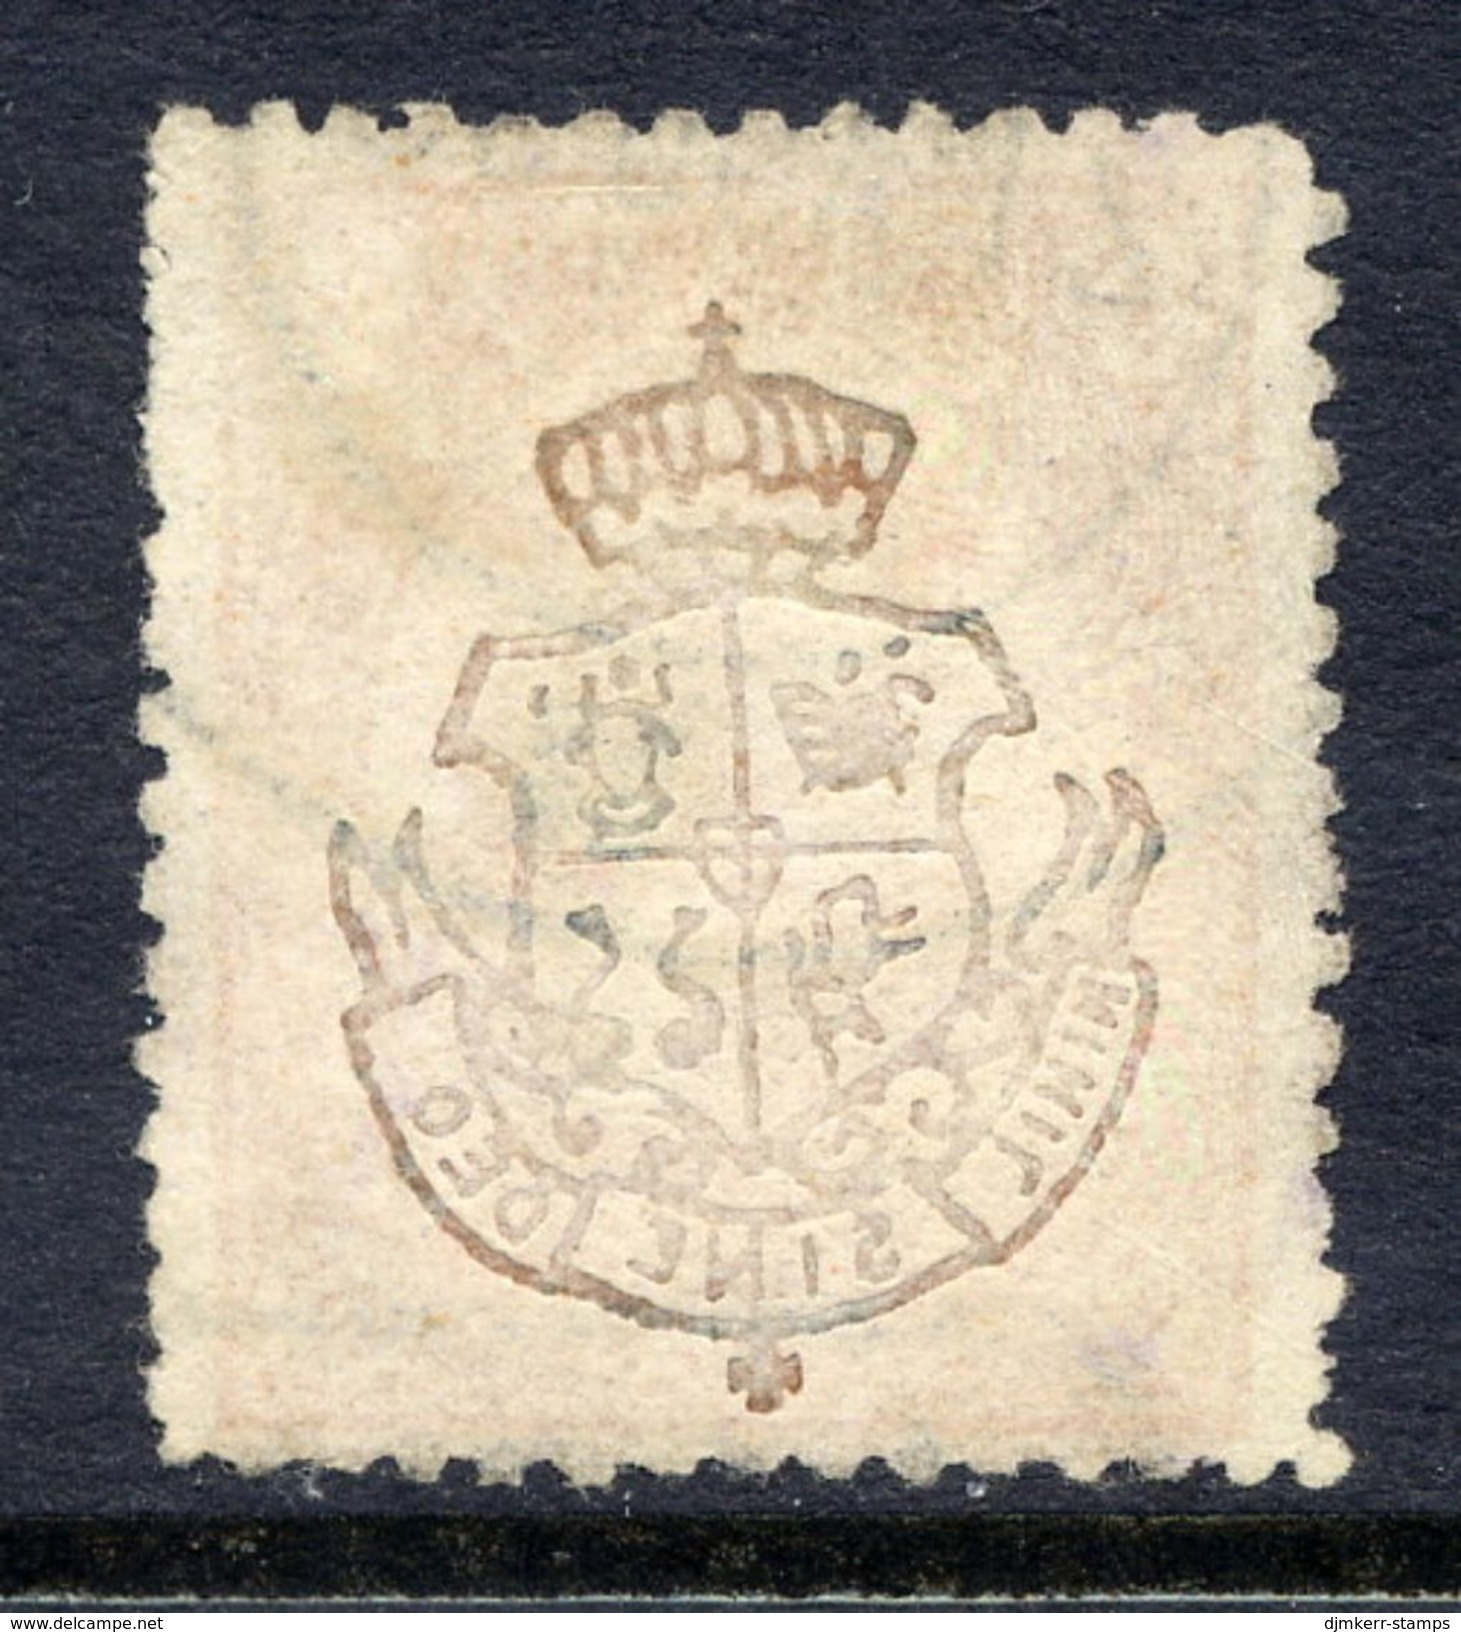 ROMANIA 1890 King Carol 50 B. With Arms Watermark Perforated 13½, Used.  SG 257, Michel 82 - Used Stamps